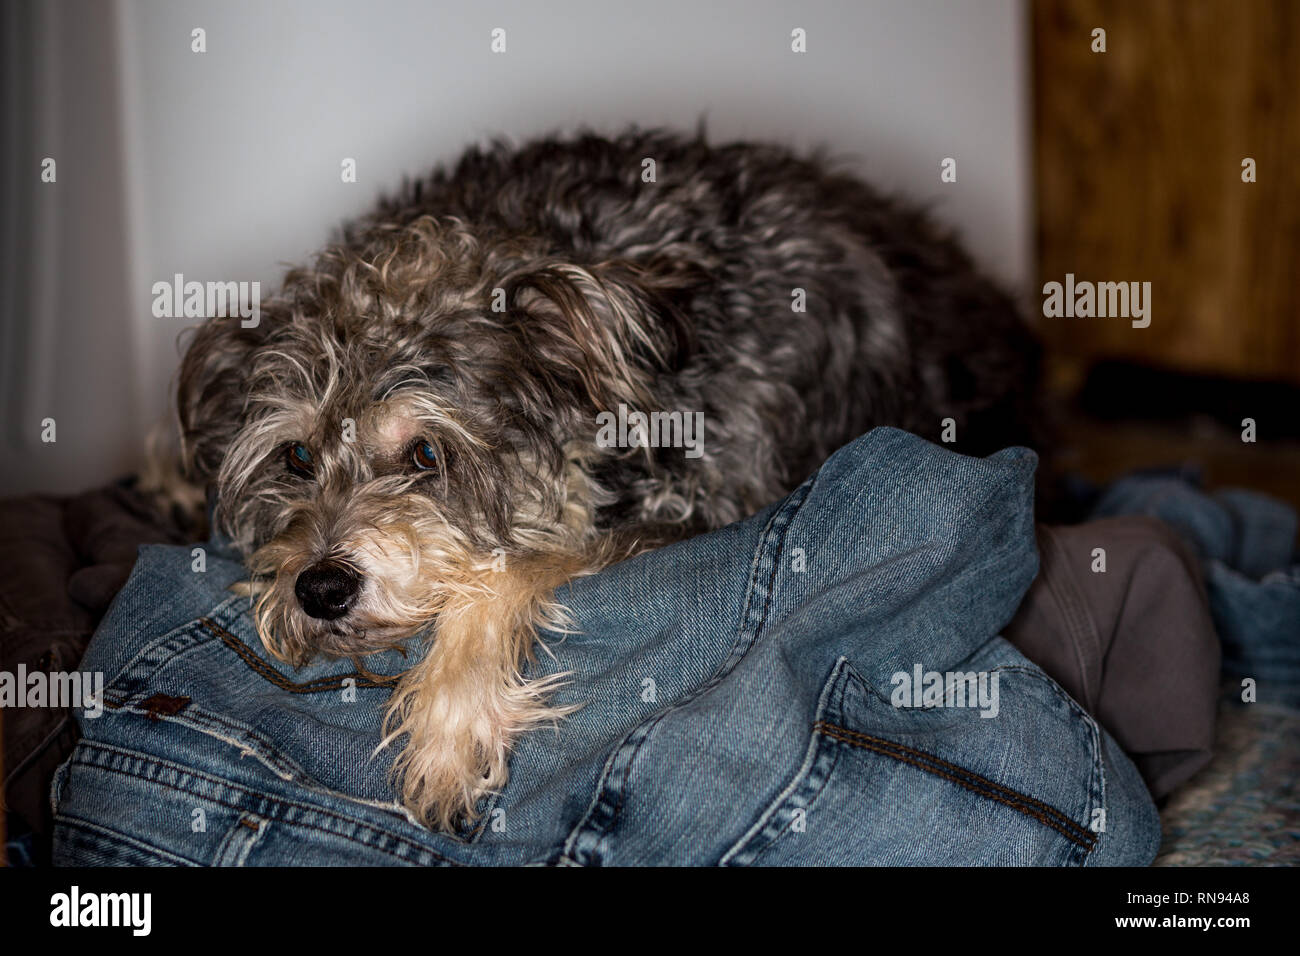 Doing laundry with pets. - Stock Image